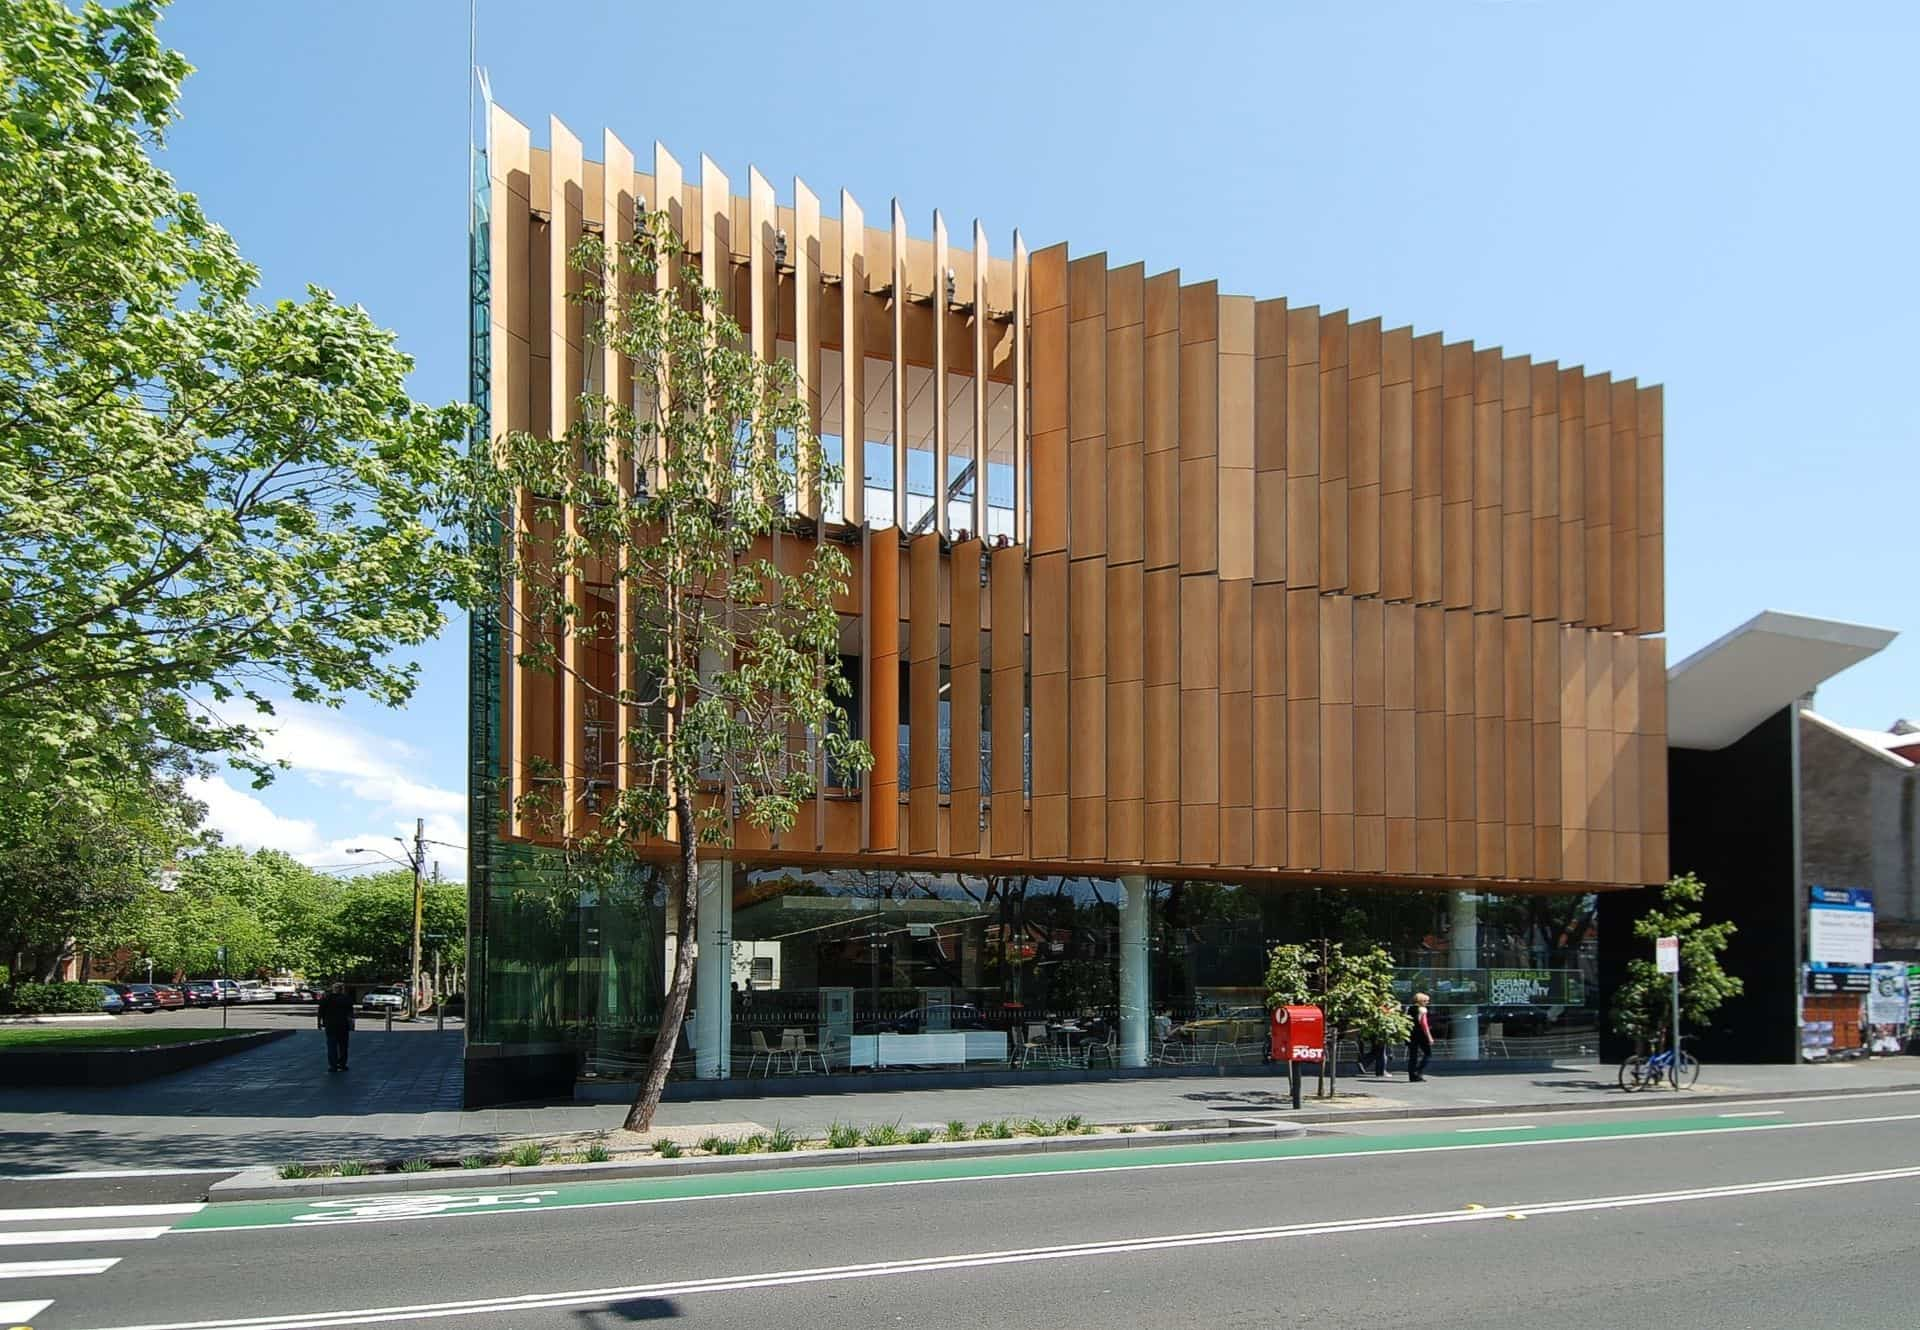 Surry Hills Library and Community Centre, Sydney, Australia.